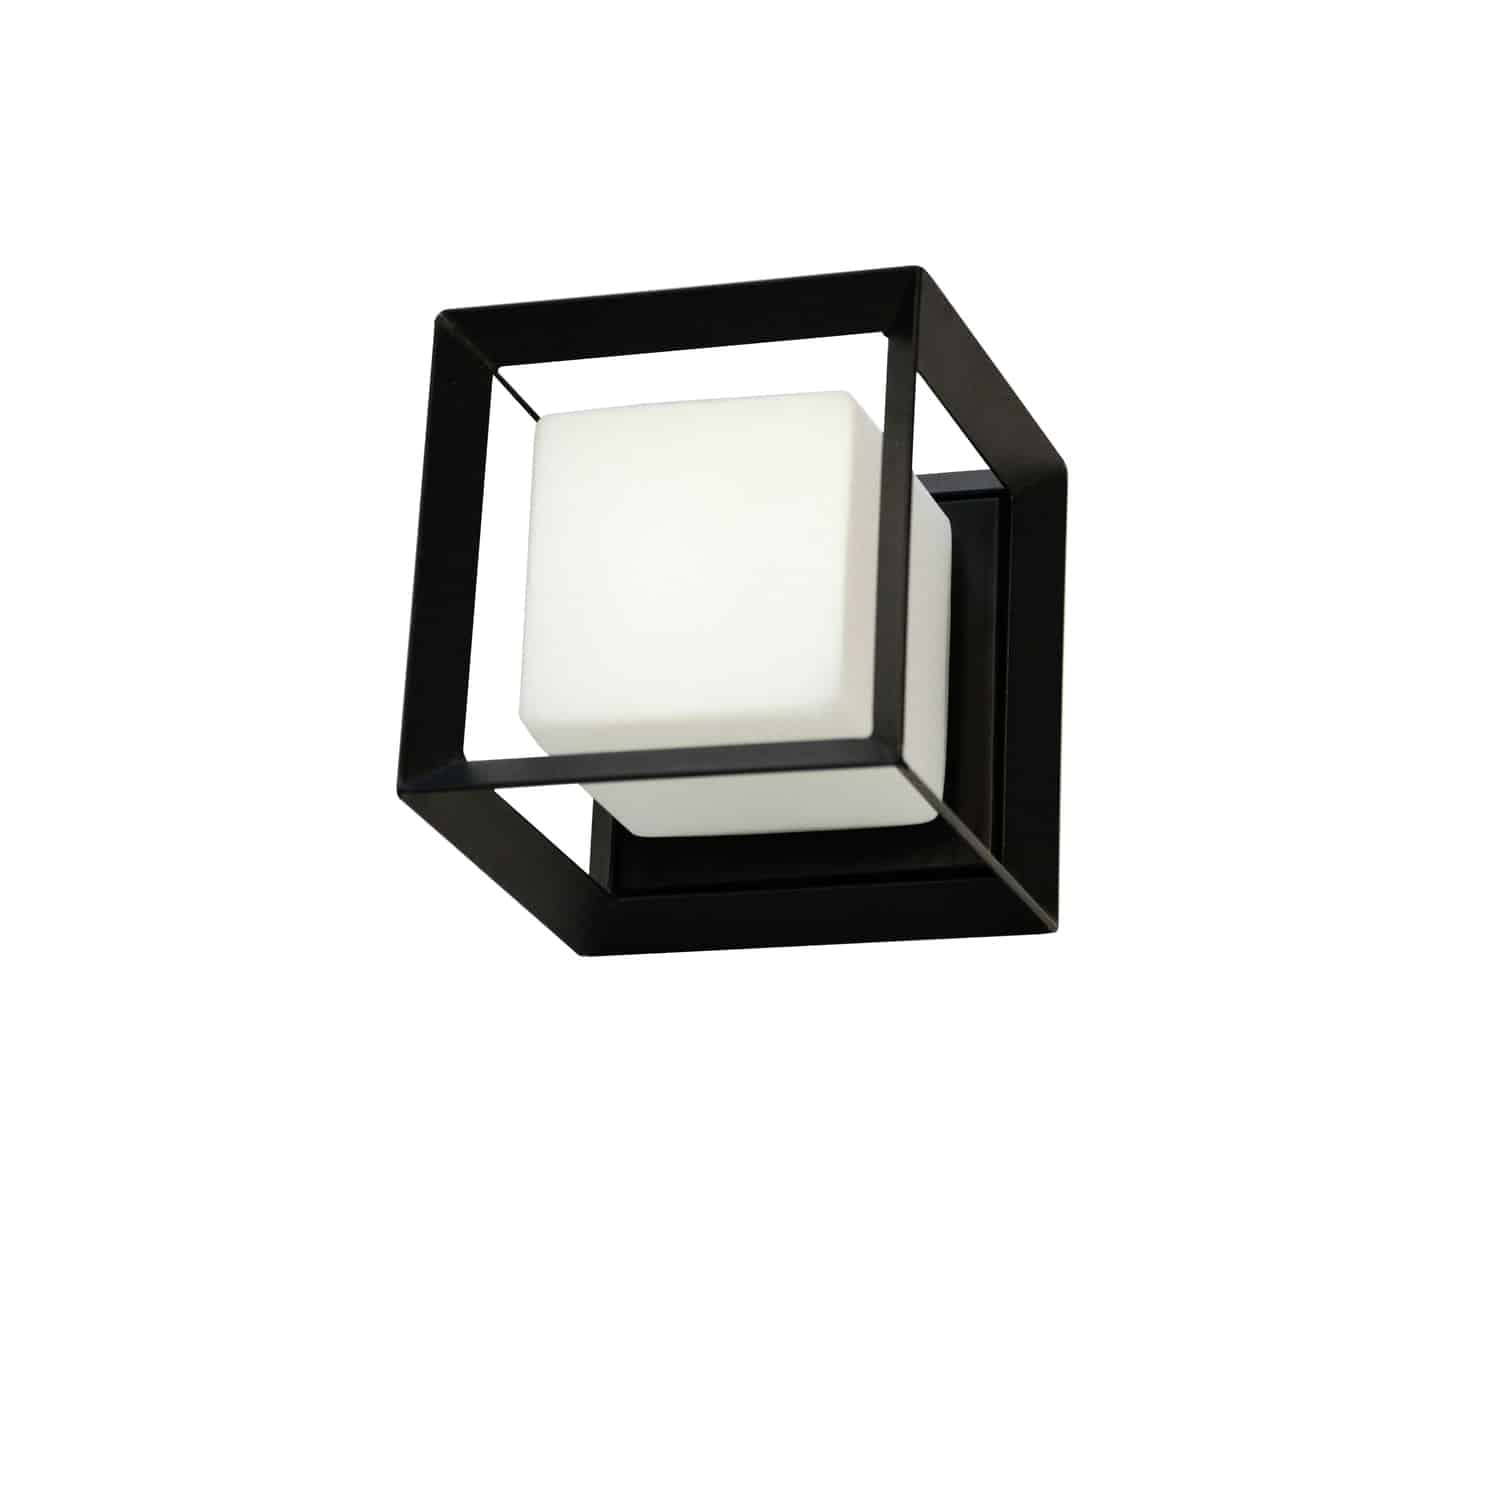 1 Light Halogen Wall Sconce, Matte Black with White Glass